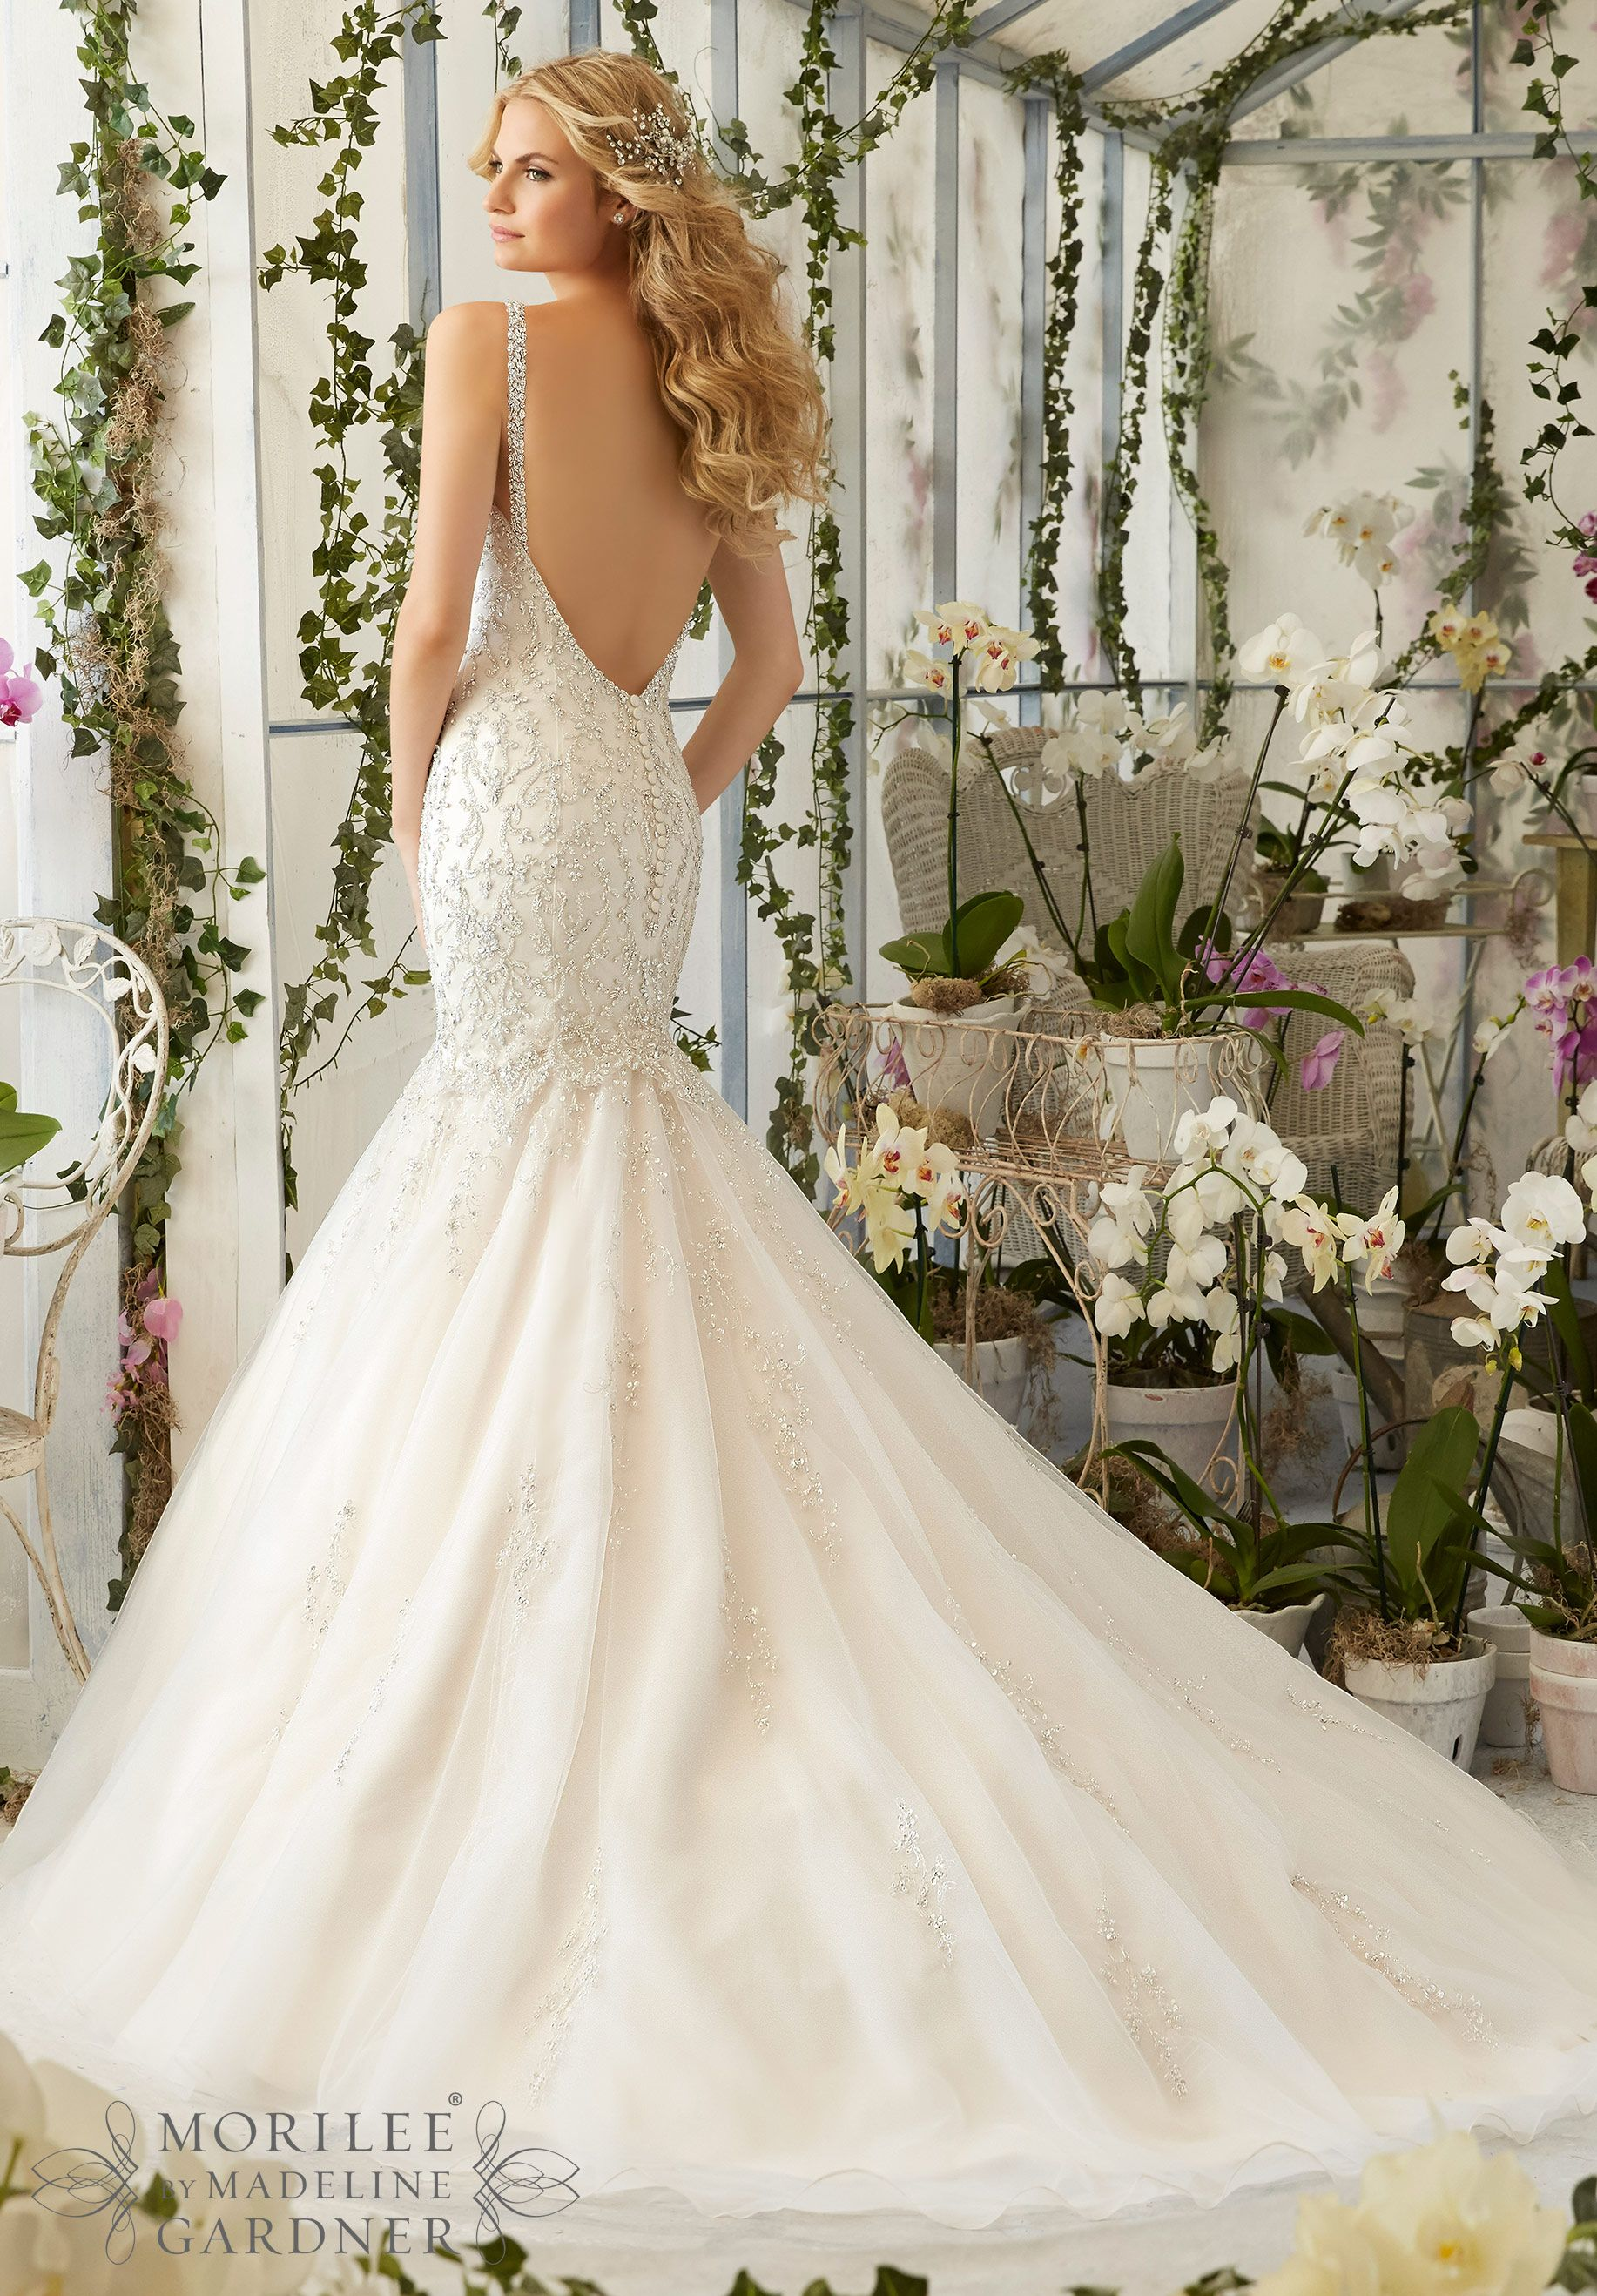 Tulle mermaid wedding dress  Wedding Dress  Intricate Crystal Beaded Embroidery on the Tulle